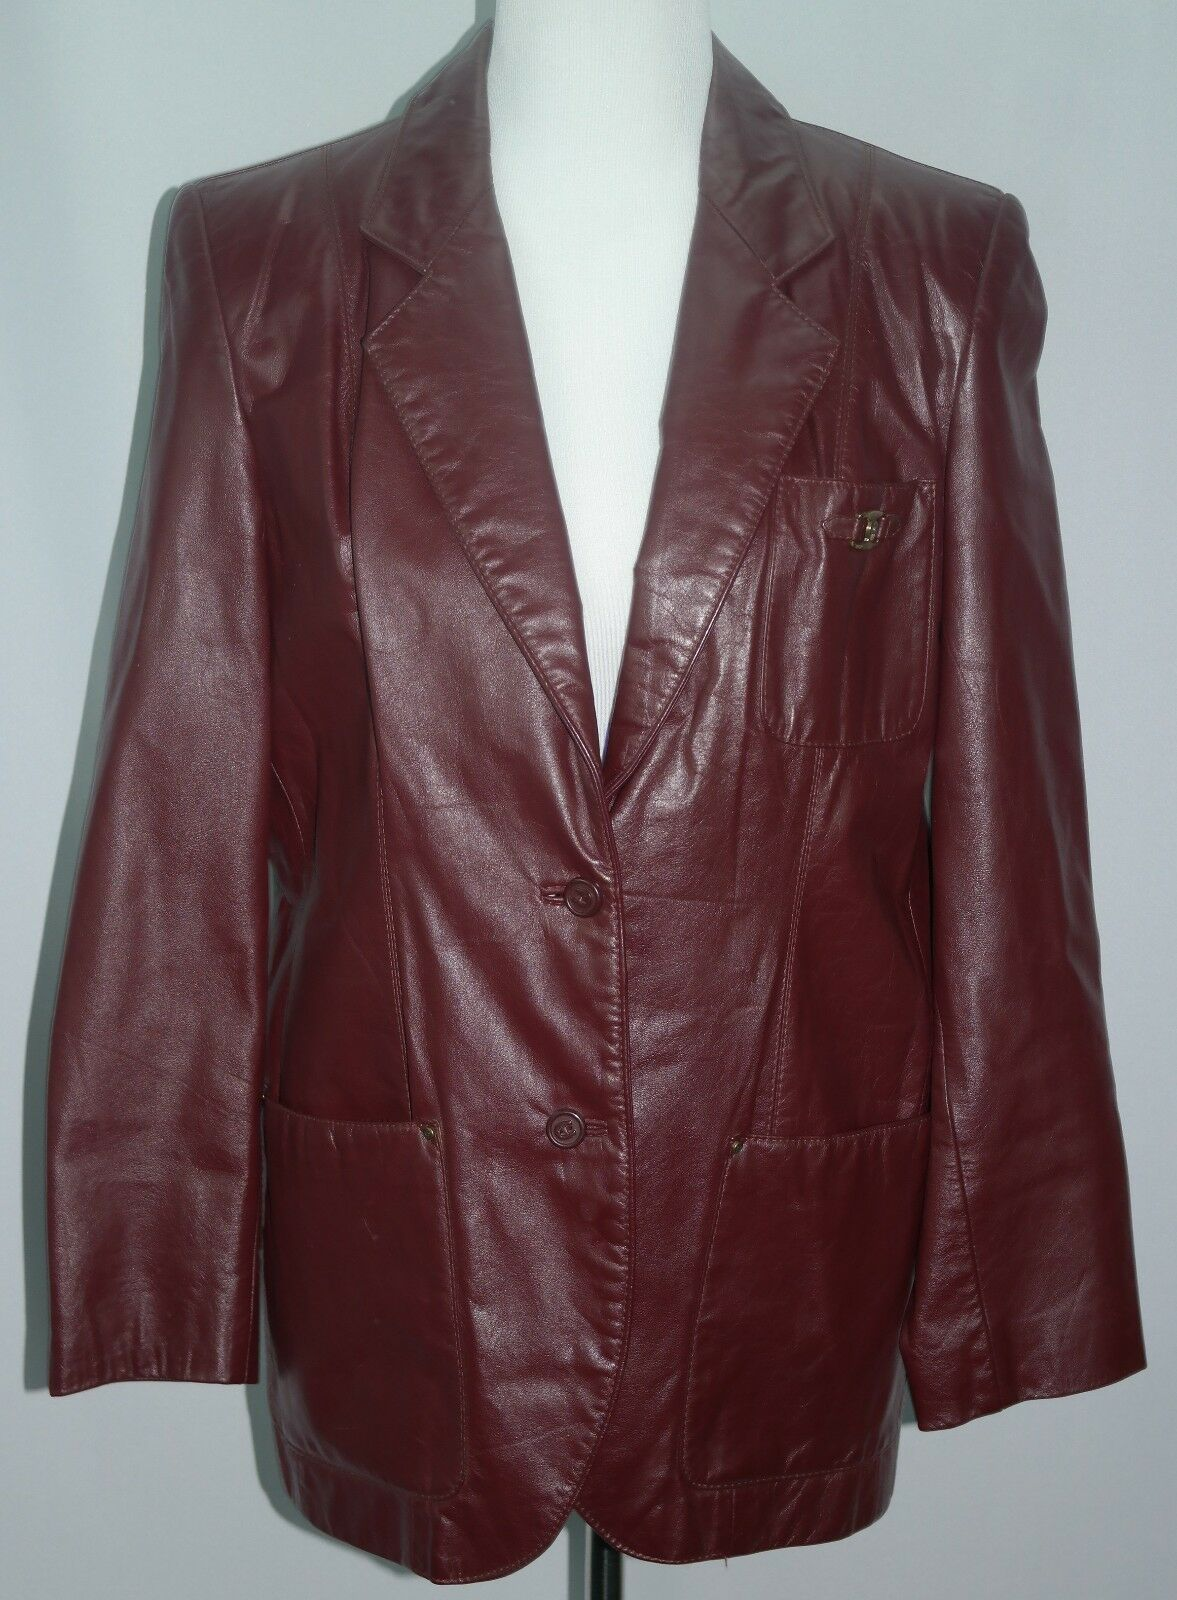 VTG 70's 80's Women's Burgundy Genuine Leather Etienne Aigner Coat - Sz 12